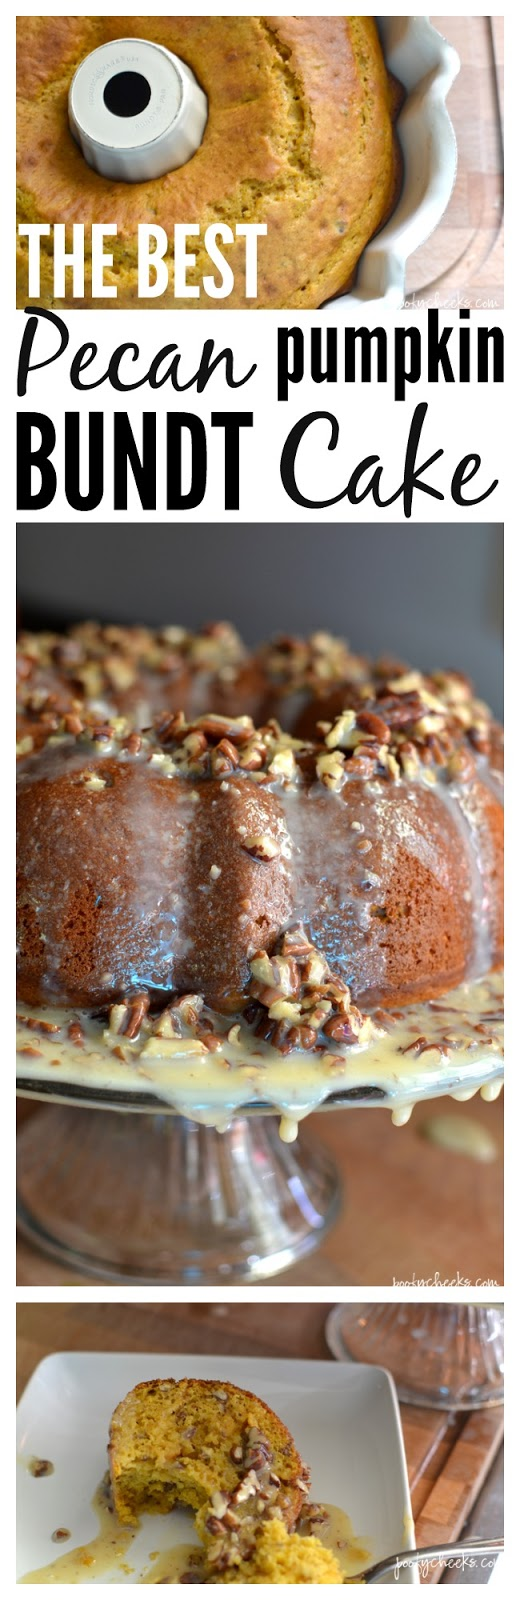 Our family LOVES this cake and we enjoy it every Fall! THE BEST pecan pumpkin bundt cake.